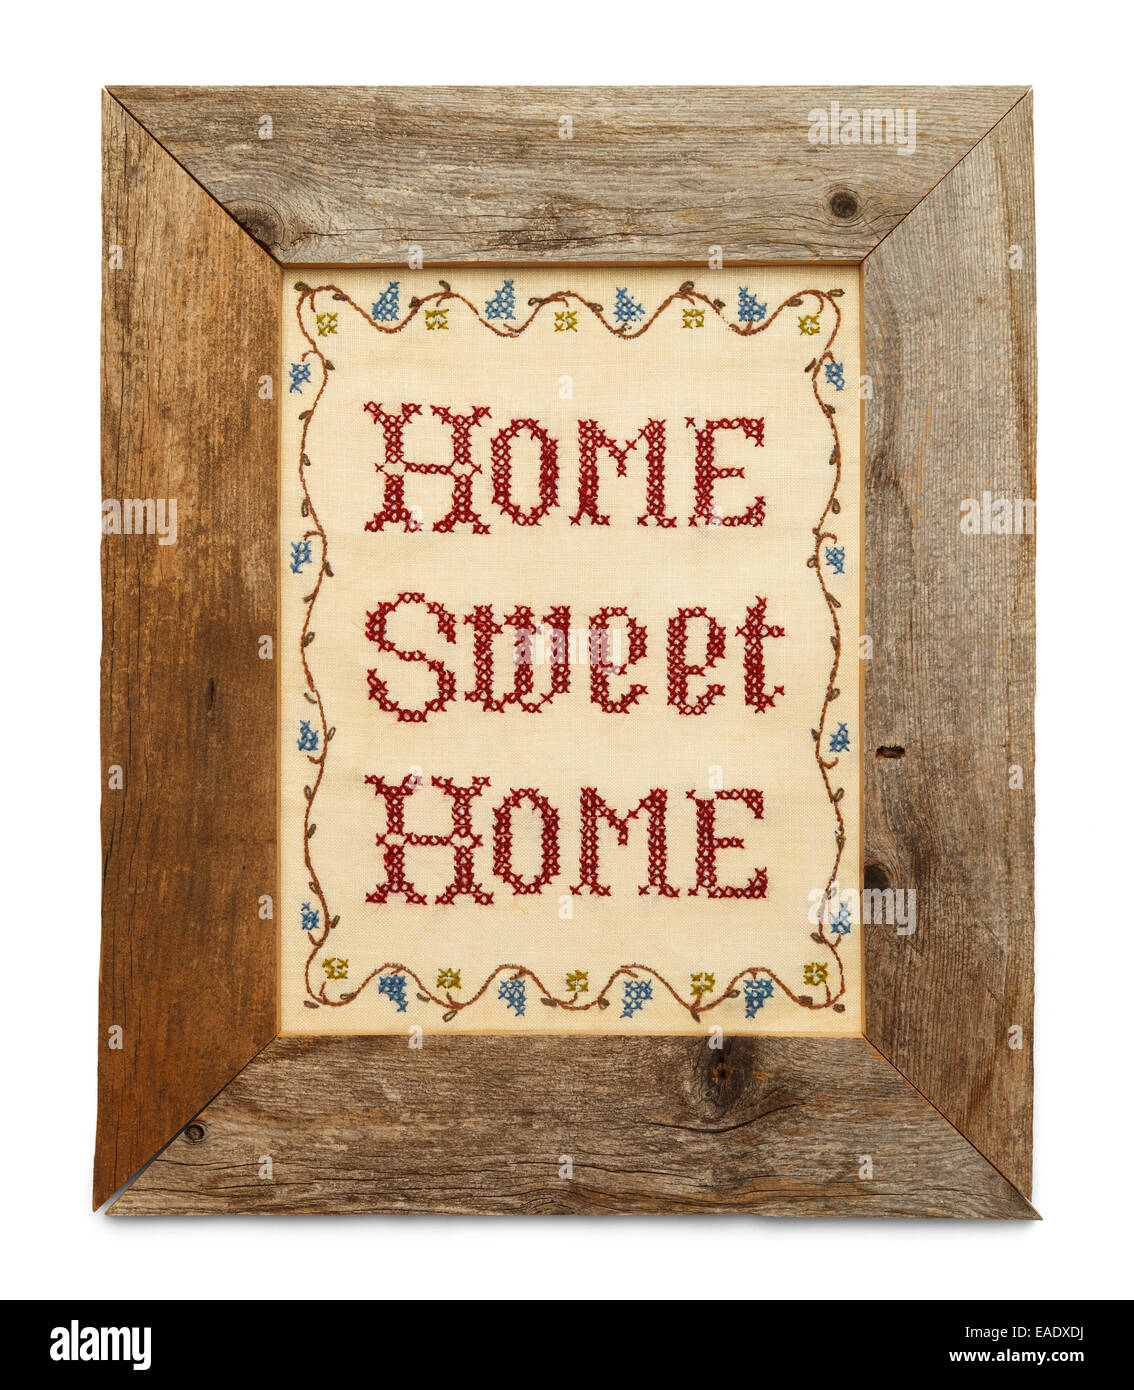 Home Sweet Home Cross Stitch in Rustic Wood Frame Isolated on White Background. Stock Photo